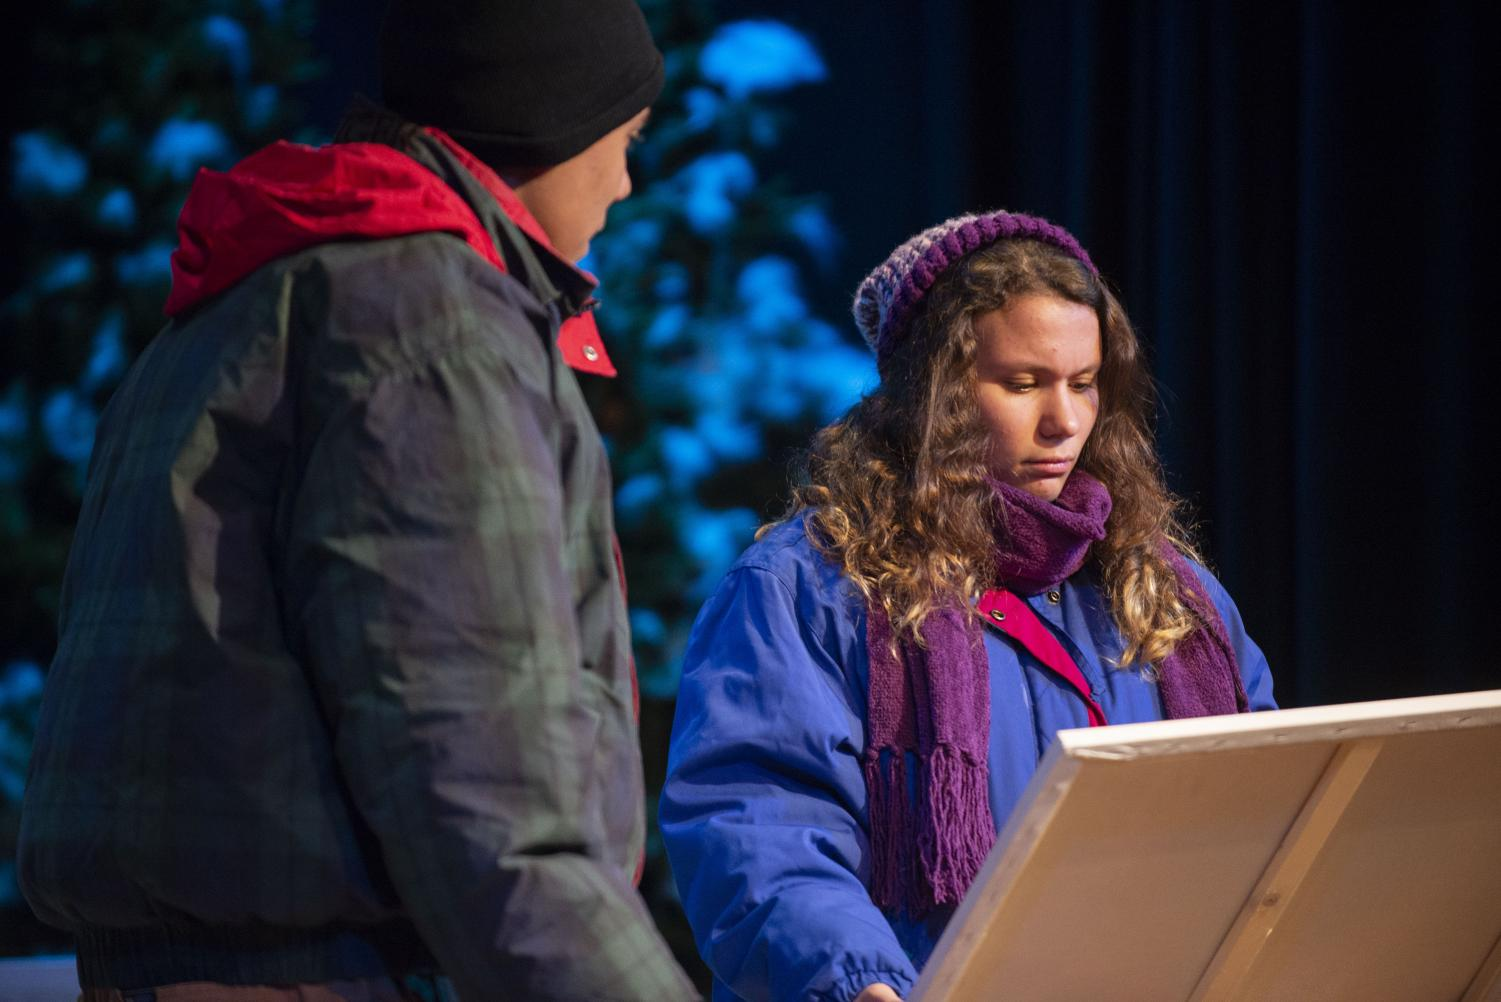 Under their 12 layers of winter clothes and the hot stage lights, junior Natalie Hole and senior Christian Anderson examine a painting during a dress rehearsal of